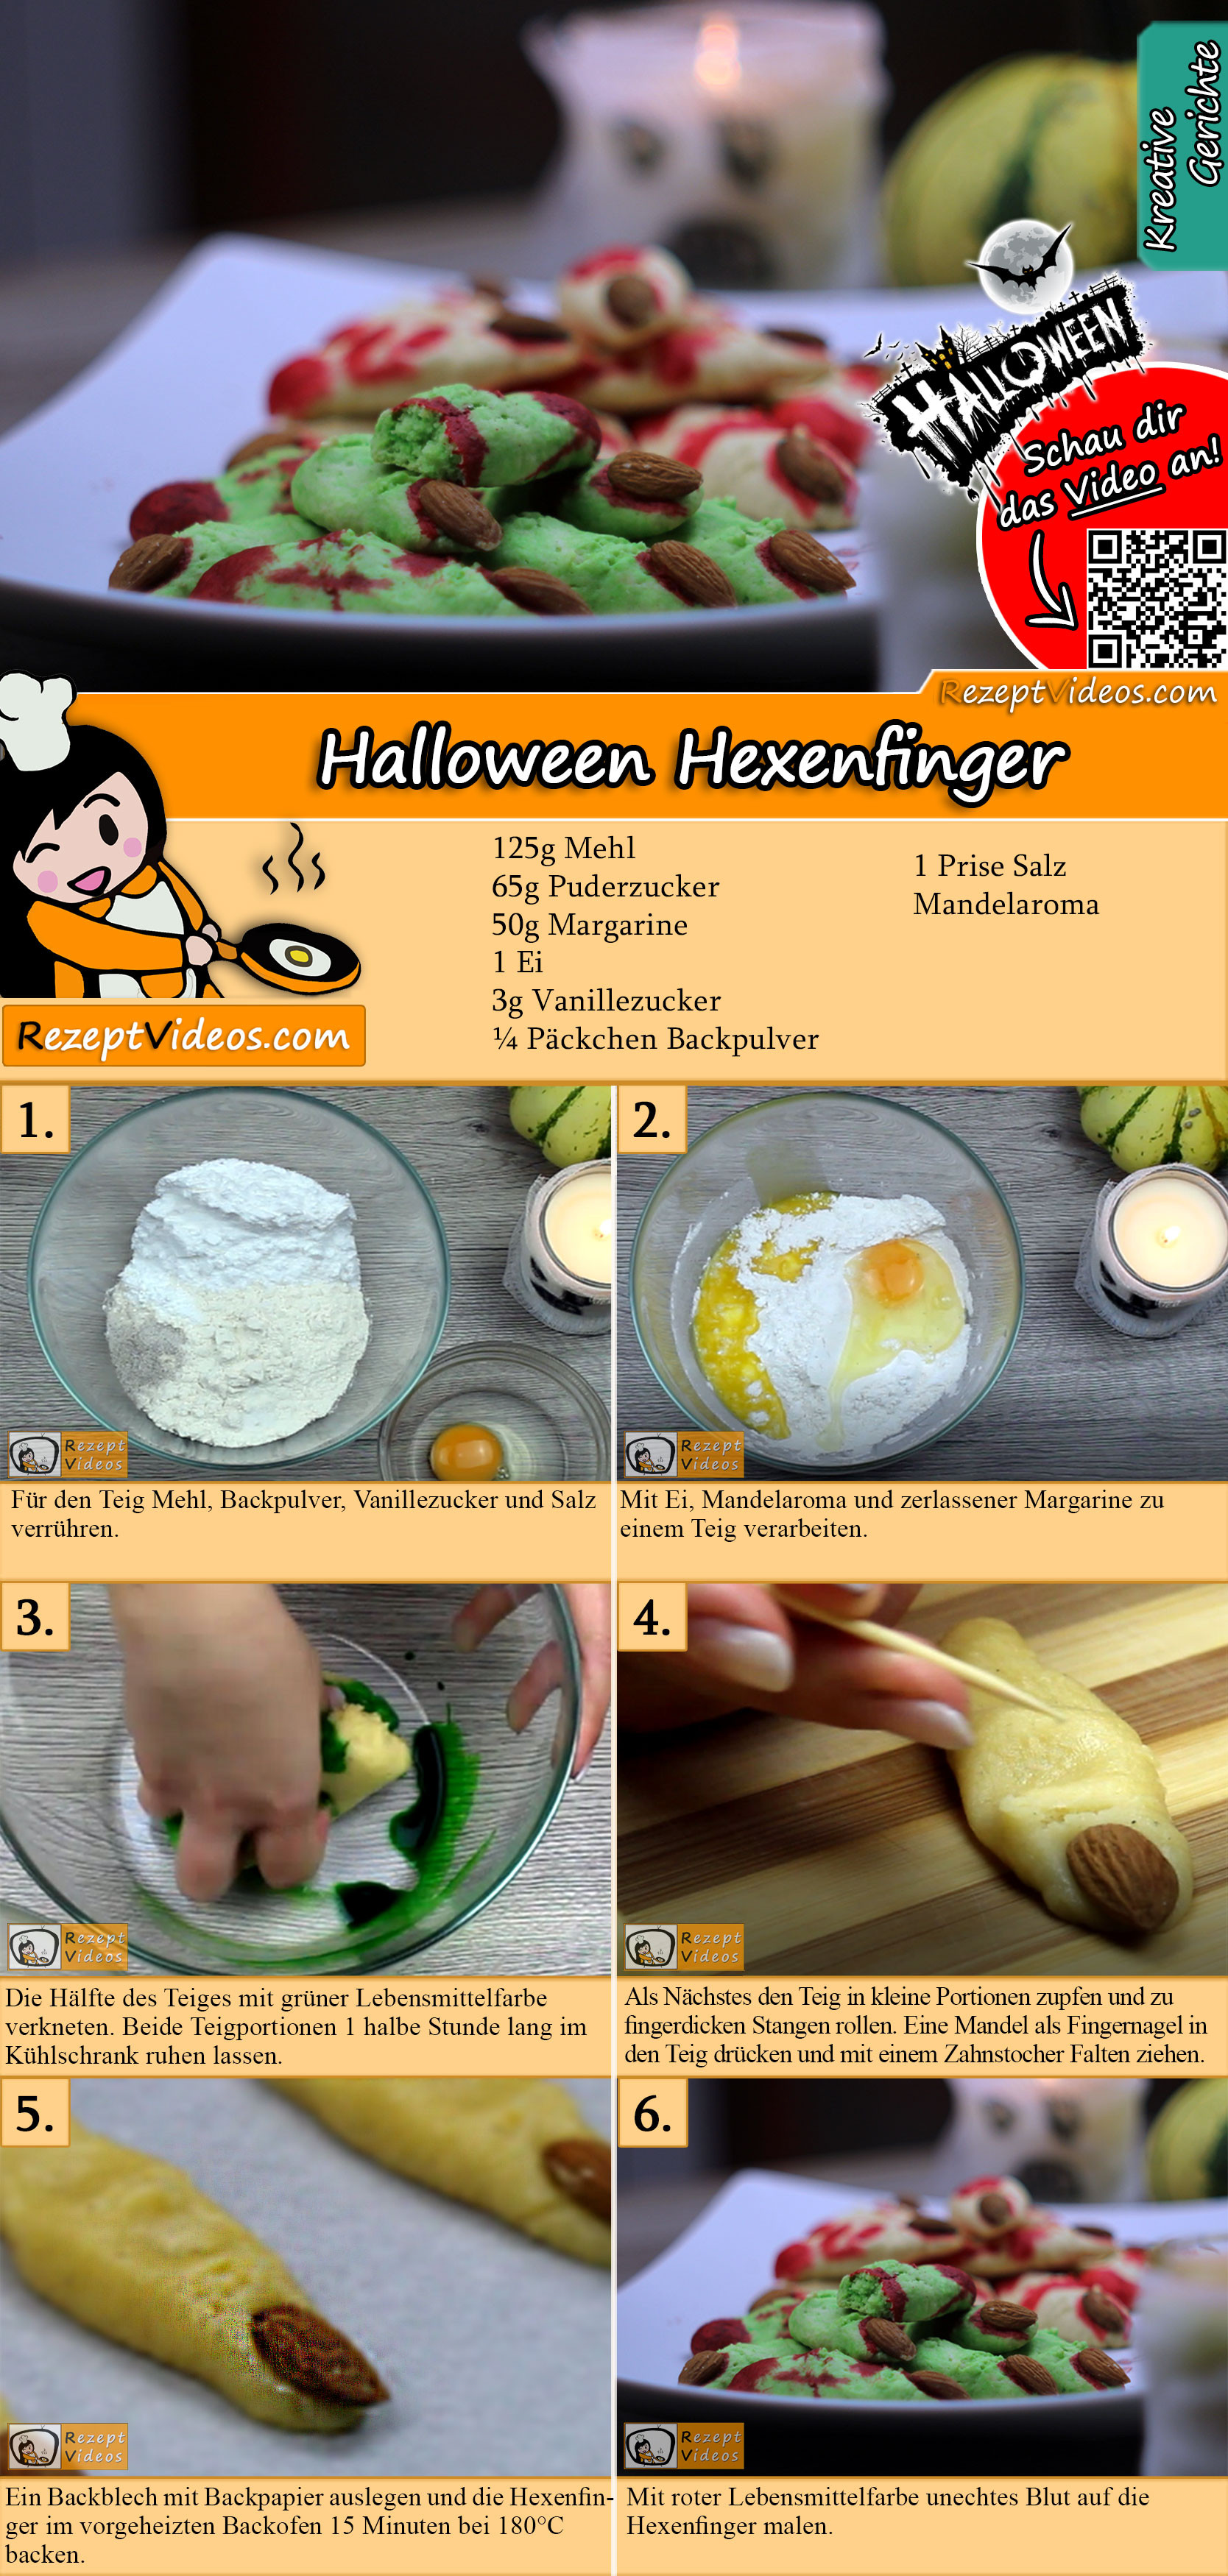 Halloween Hexenfinger Rezept mit Video